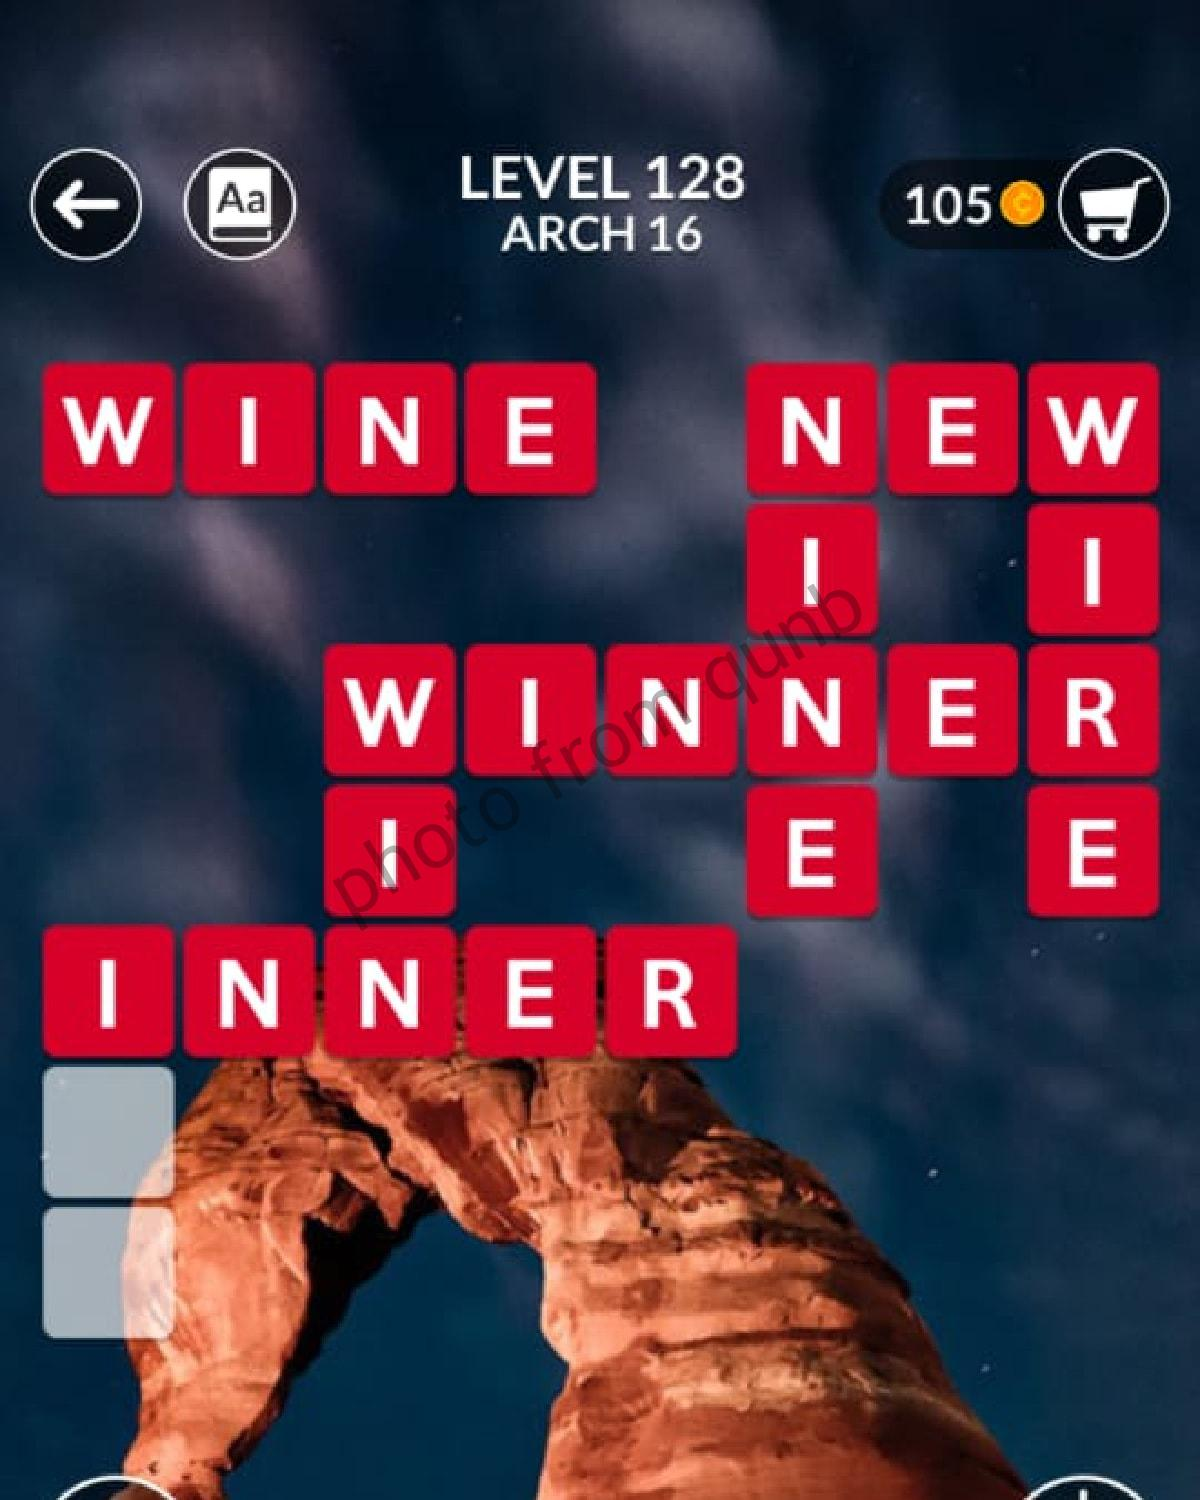 Wordscapes Level 128 Arch 16 Answers Qunb